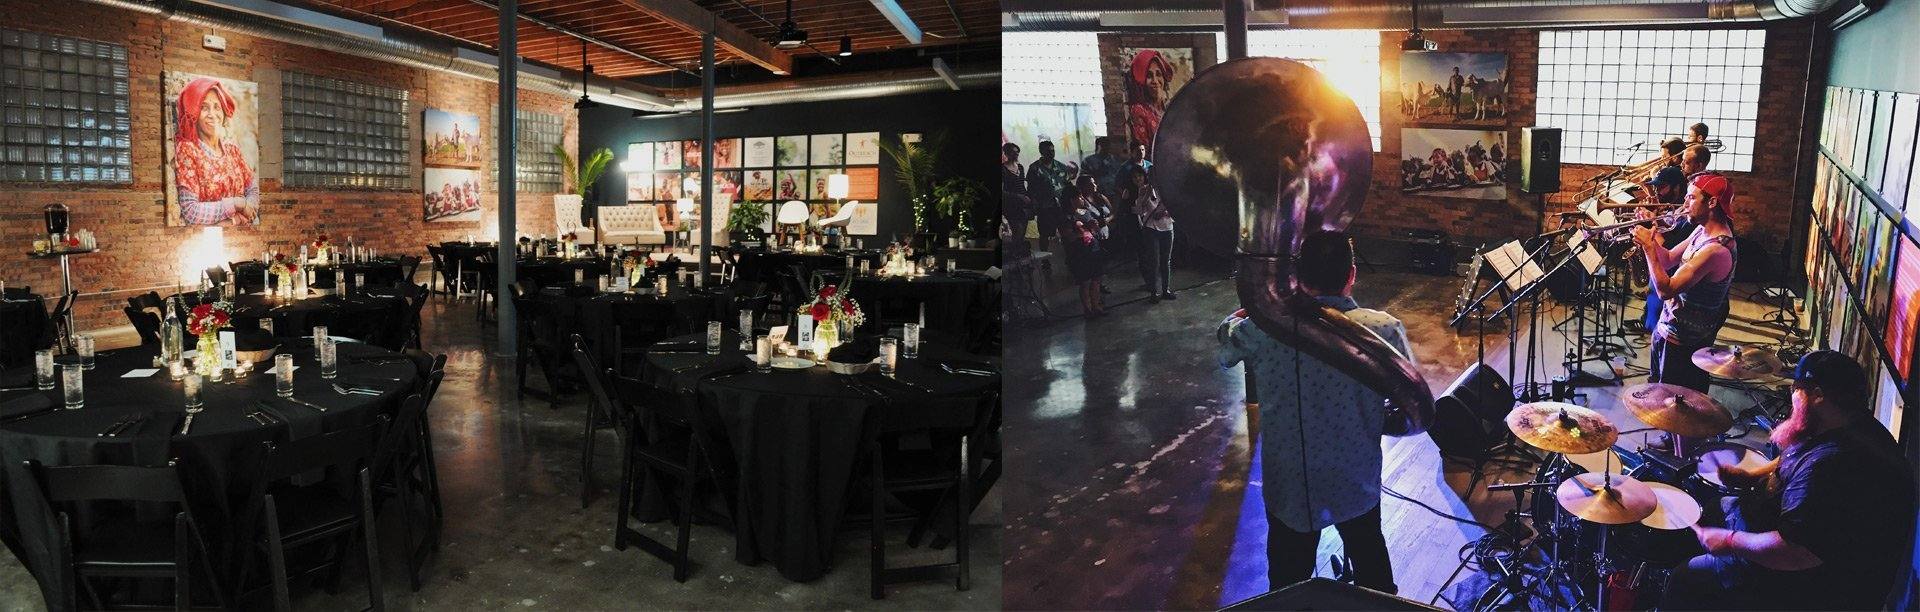 outreach event space | gala dinner | concert